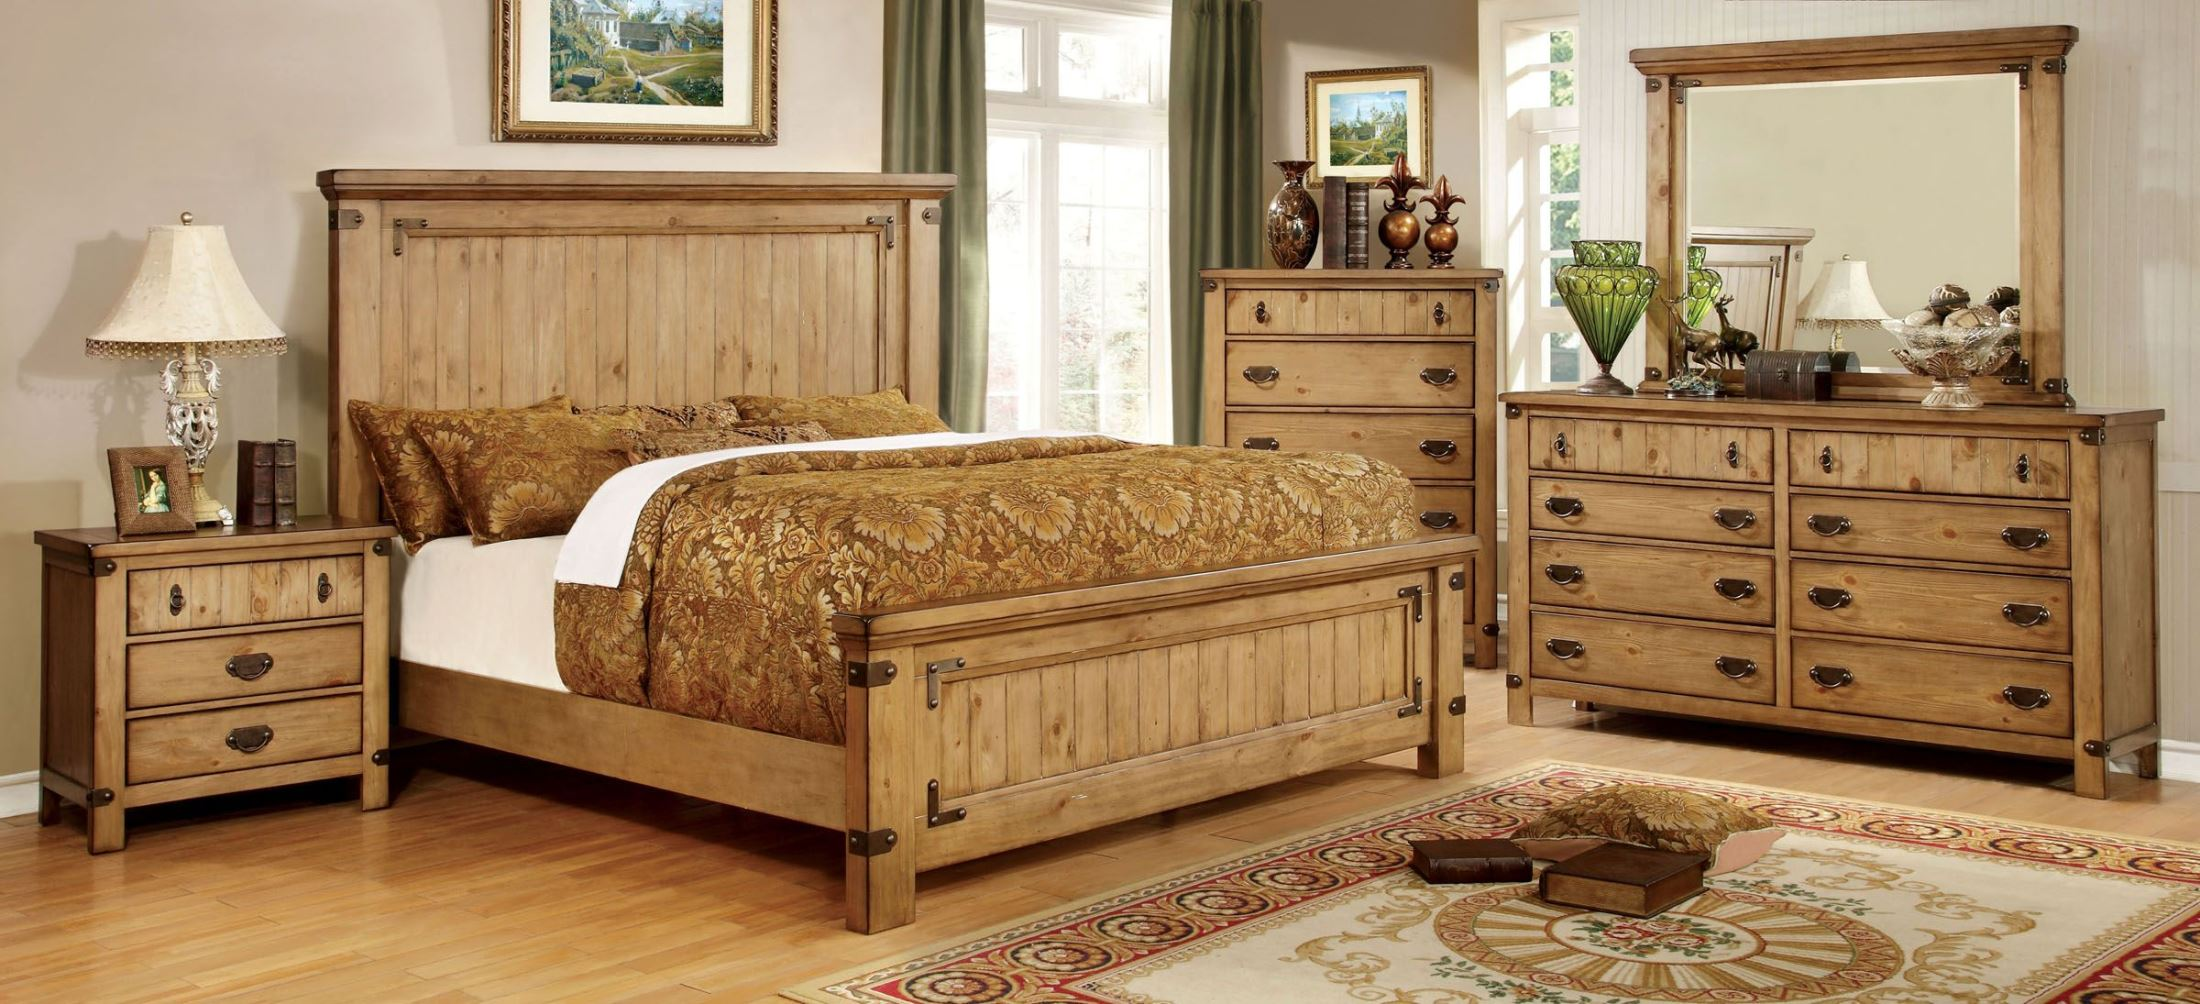 furniture of america pioneer burnished pine bedroom set sets atmosphere ideas telephone pioneers museum life in bell cookbooks american the west early new apppie org